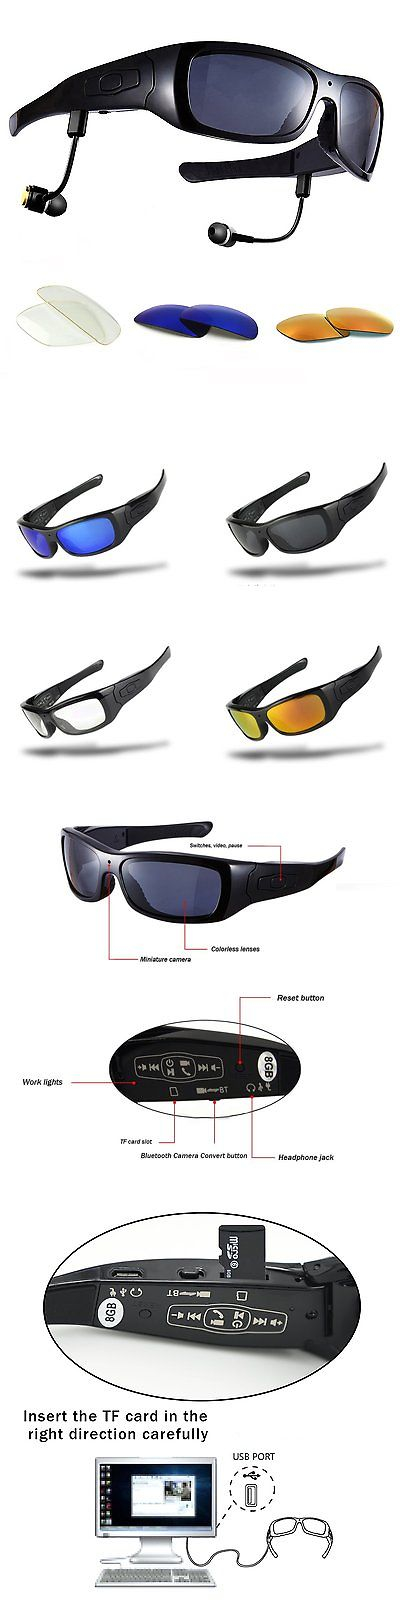 d44fd65f2c Video Glasses  Forestfish Bluetooth Sunglasses With Camera 8Gb Sd Card Hd  720P Video Camera